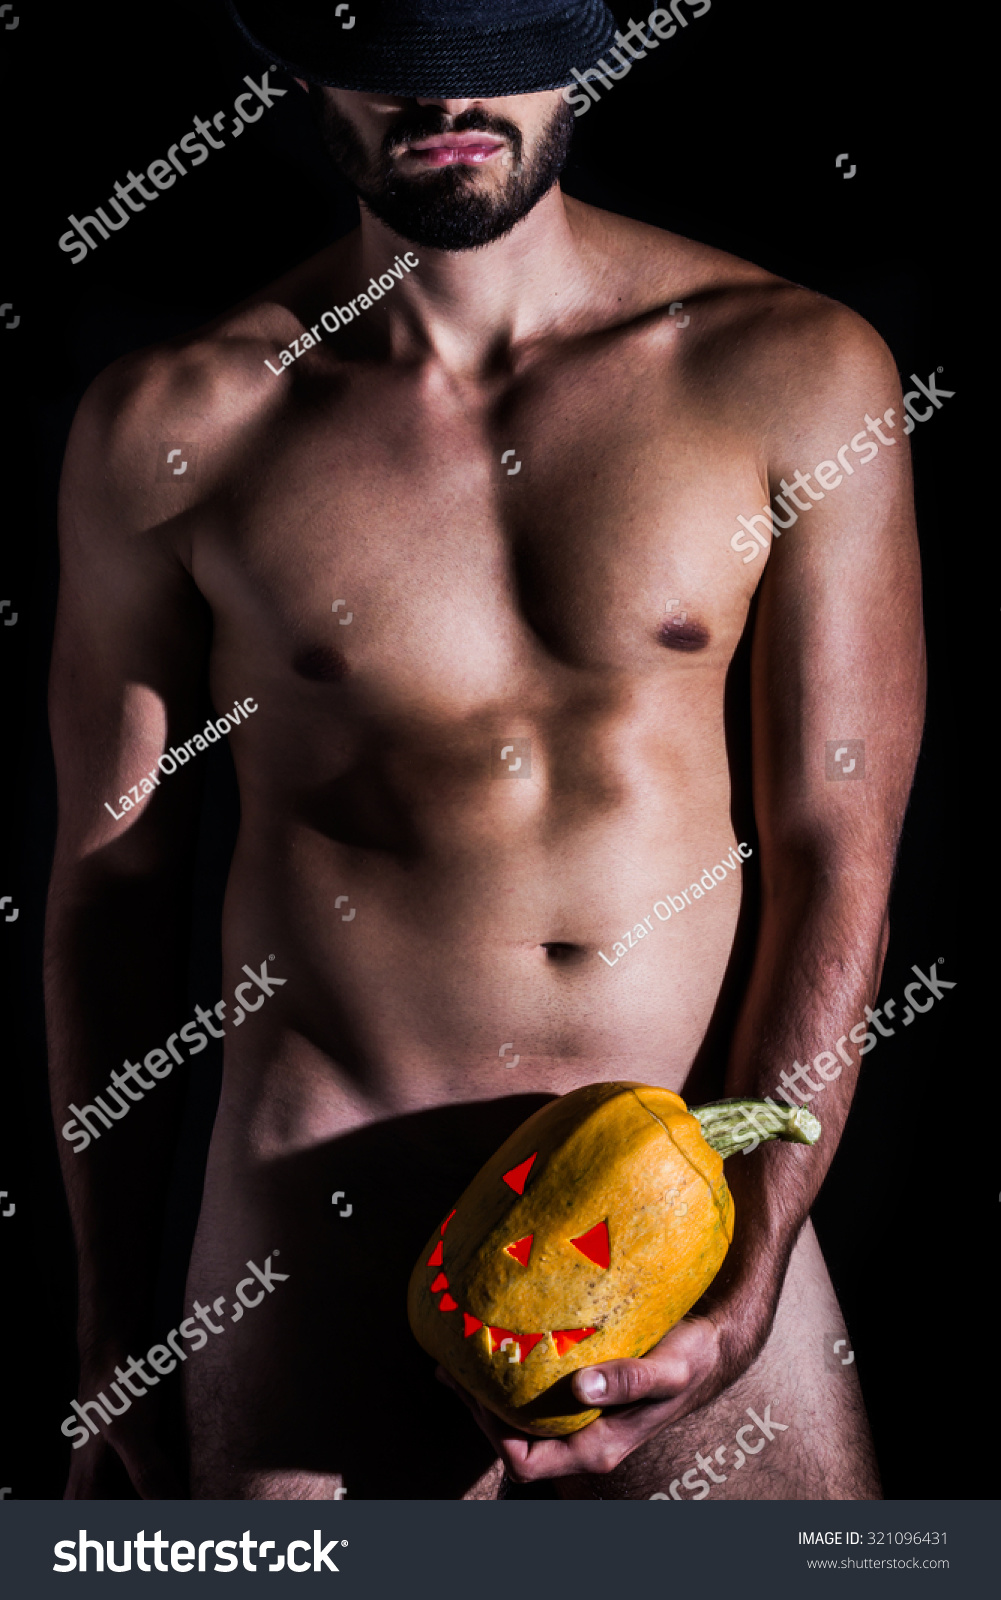 Thanksgiving sexy men photos goes beyond